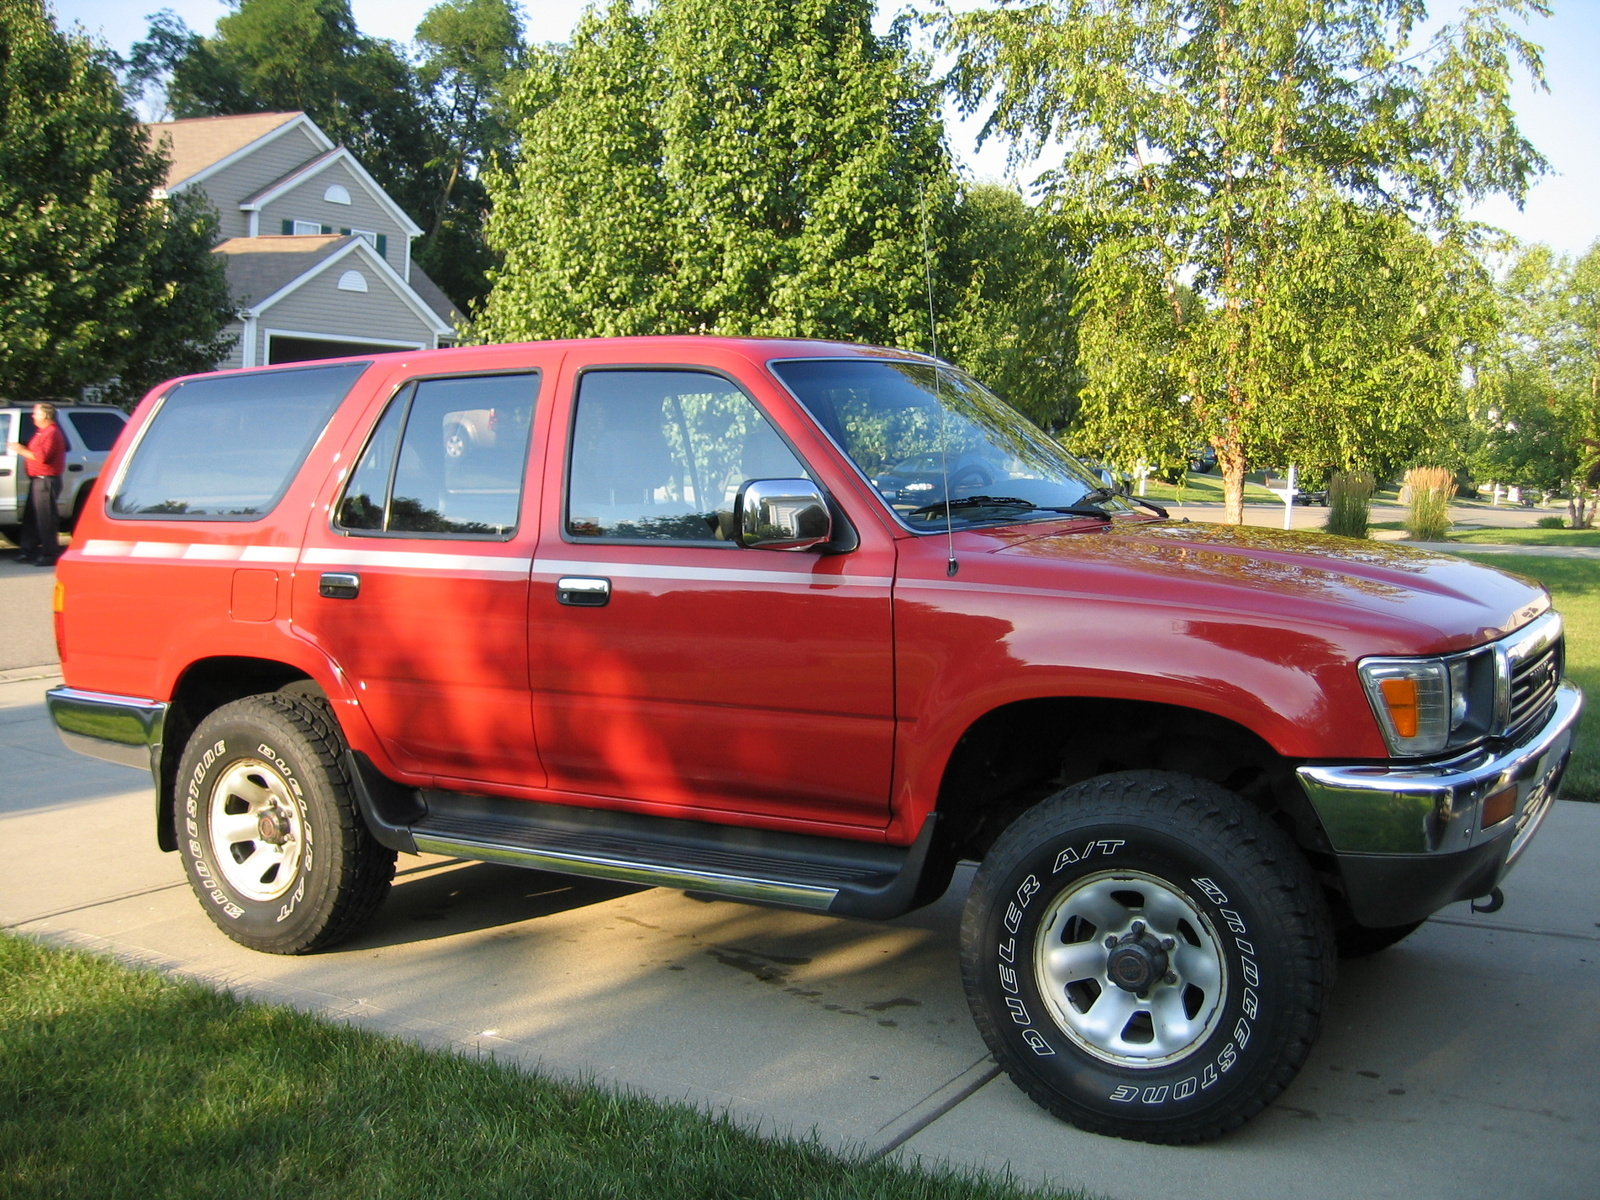 Toyota Four Runner For Sale >> 1991 Toyota 4Runner - Overview - CarGurus